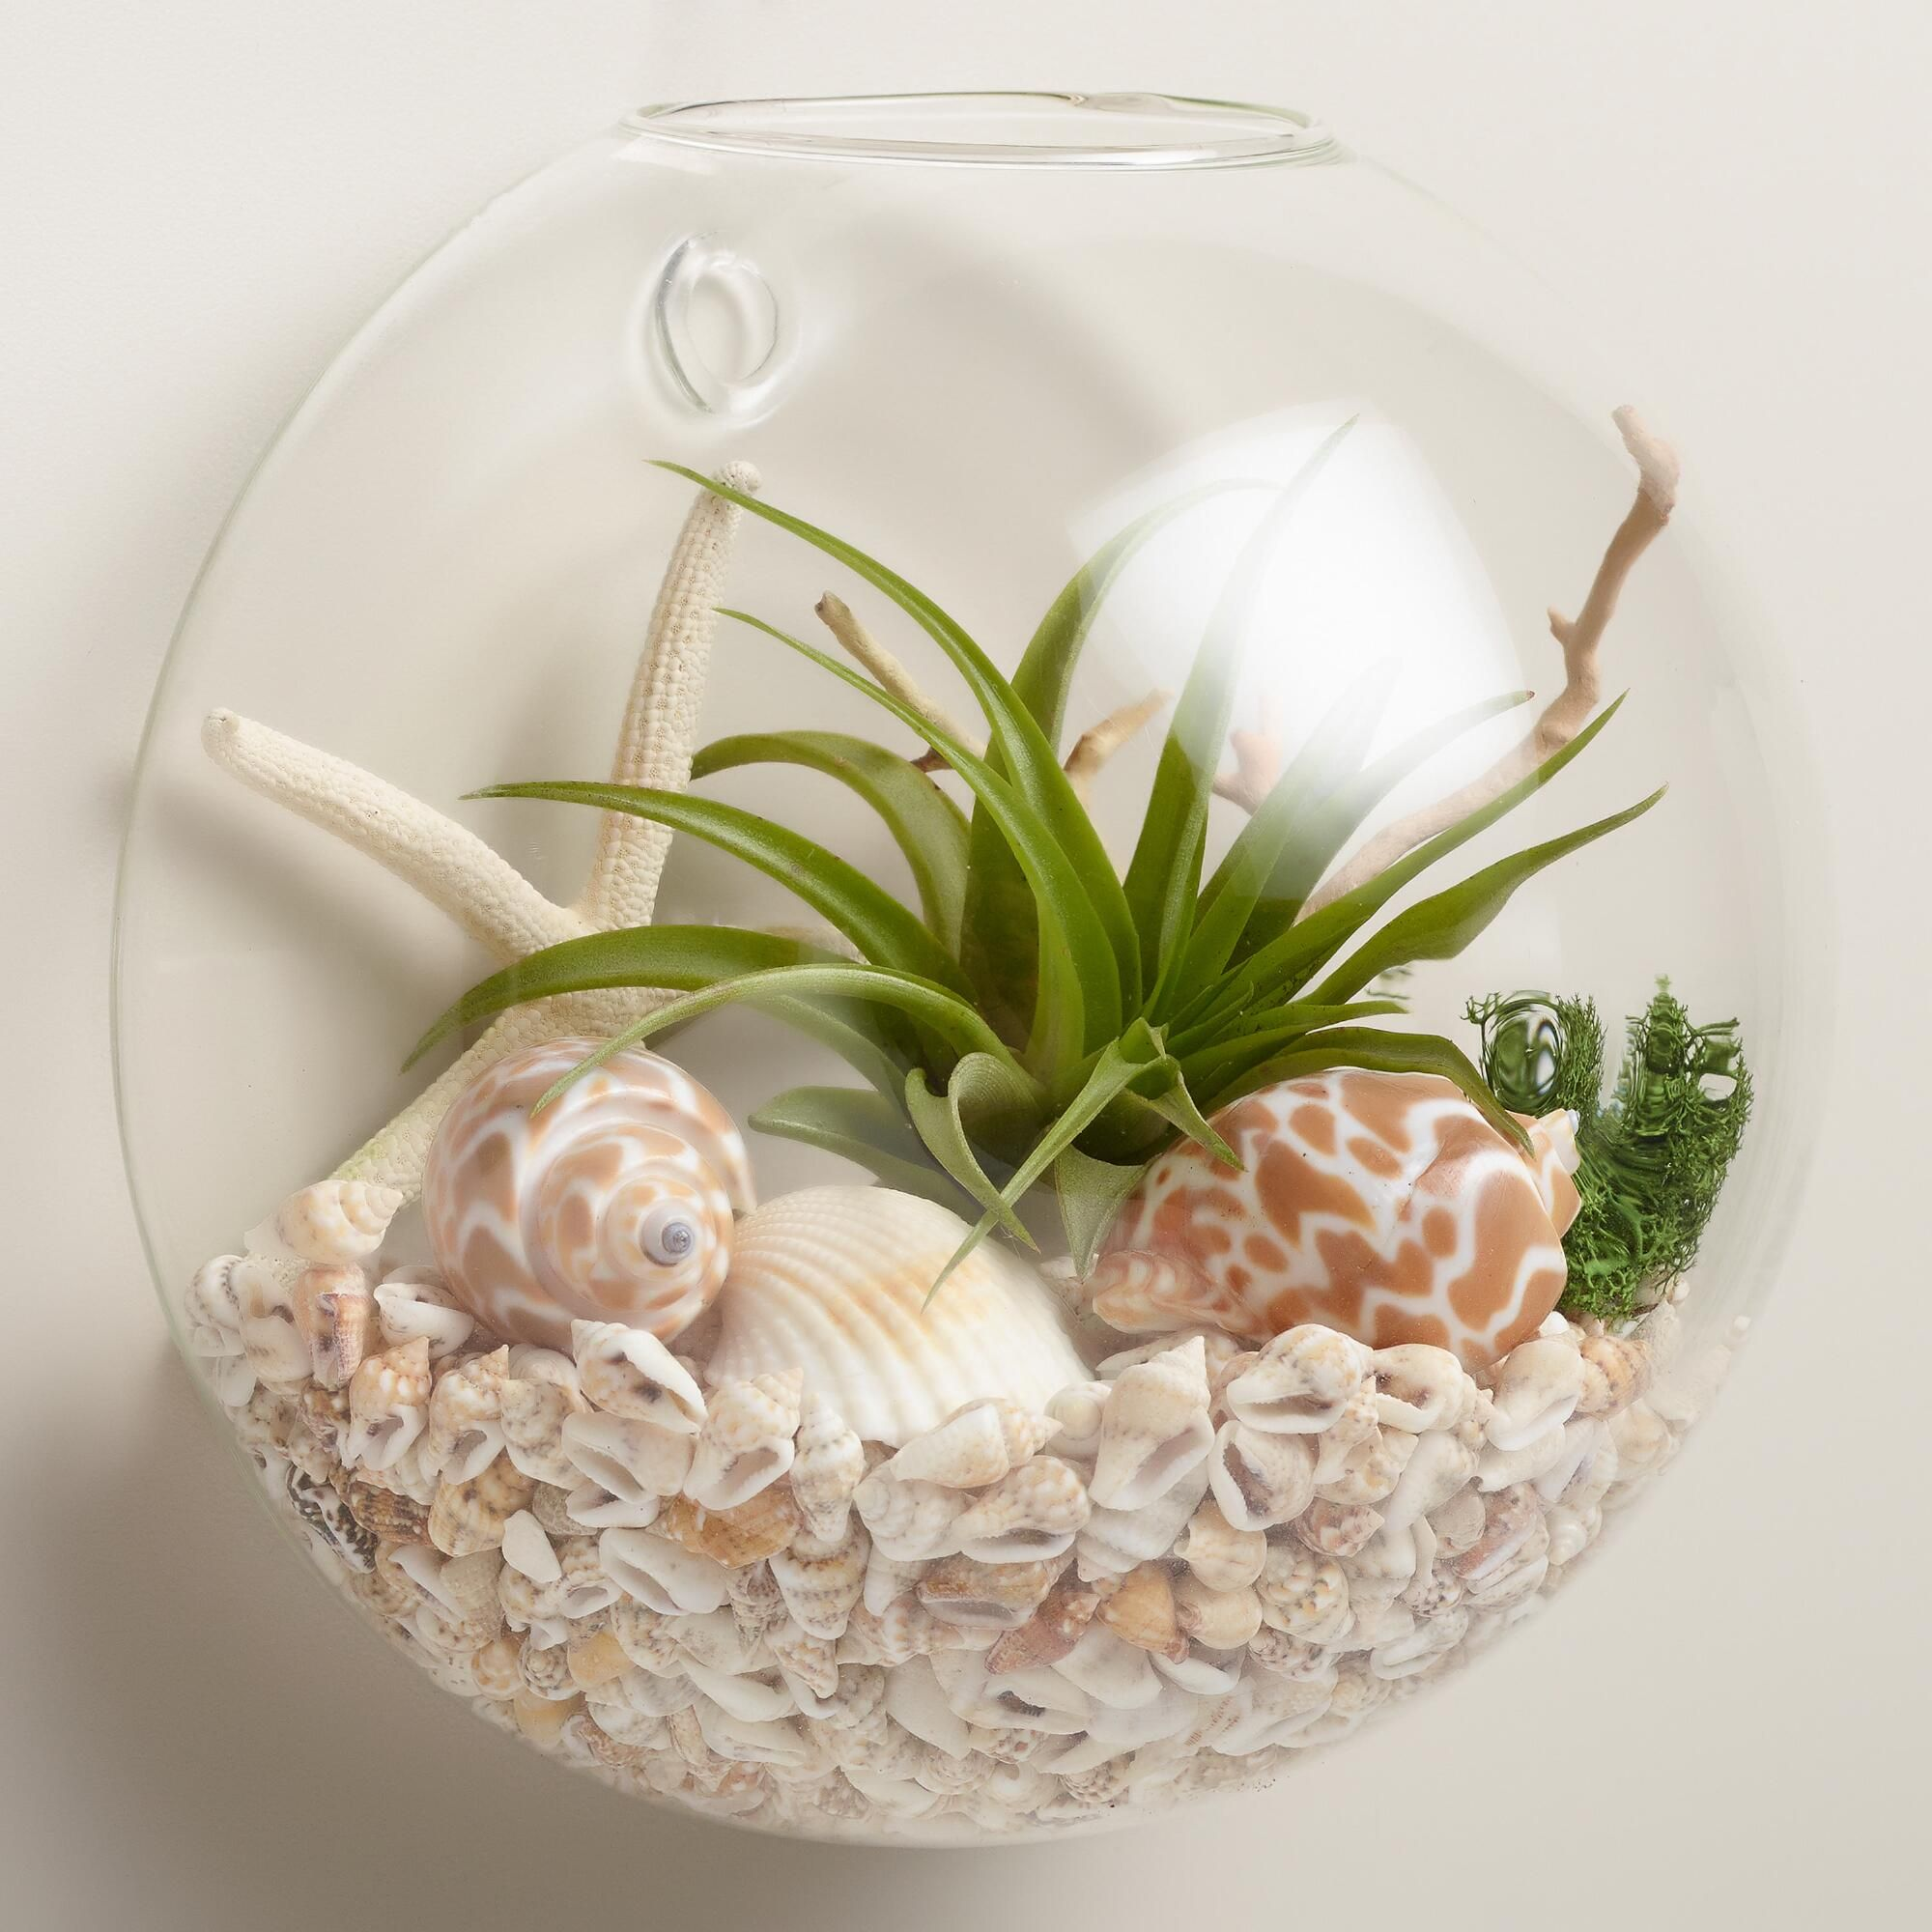 Fix our terrarium to your wall to refresh the look and atmosphere cost plus world market wall mounted live plant glass terrarium reviewsmspy